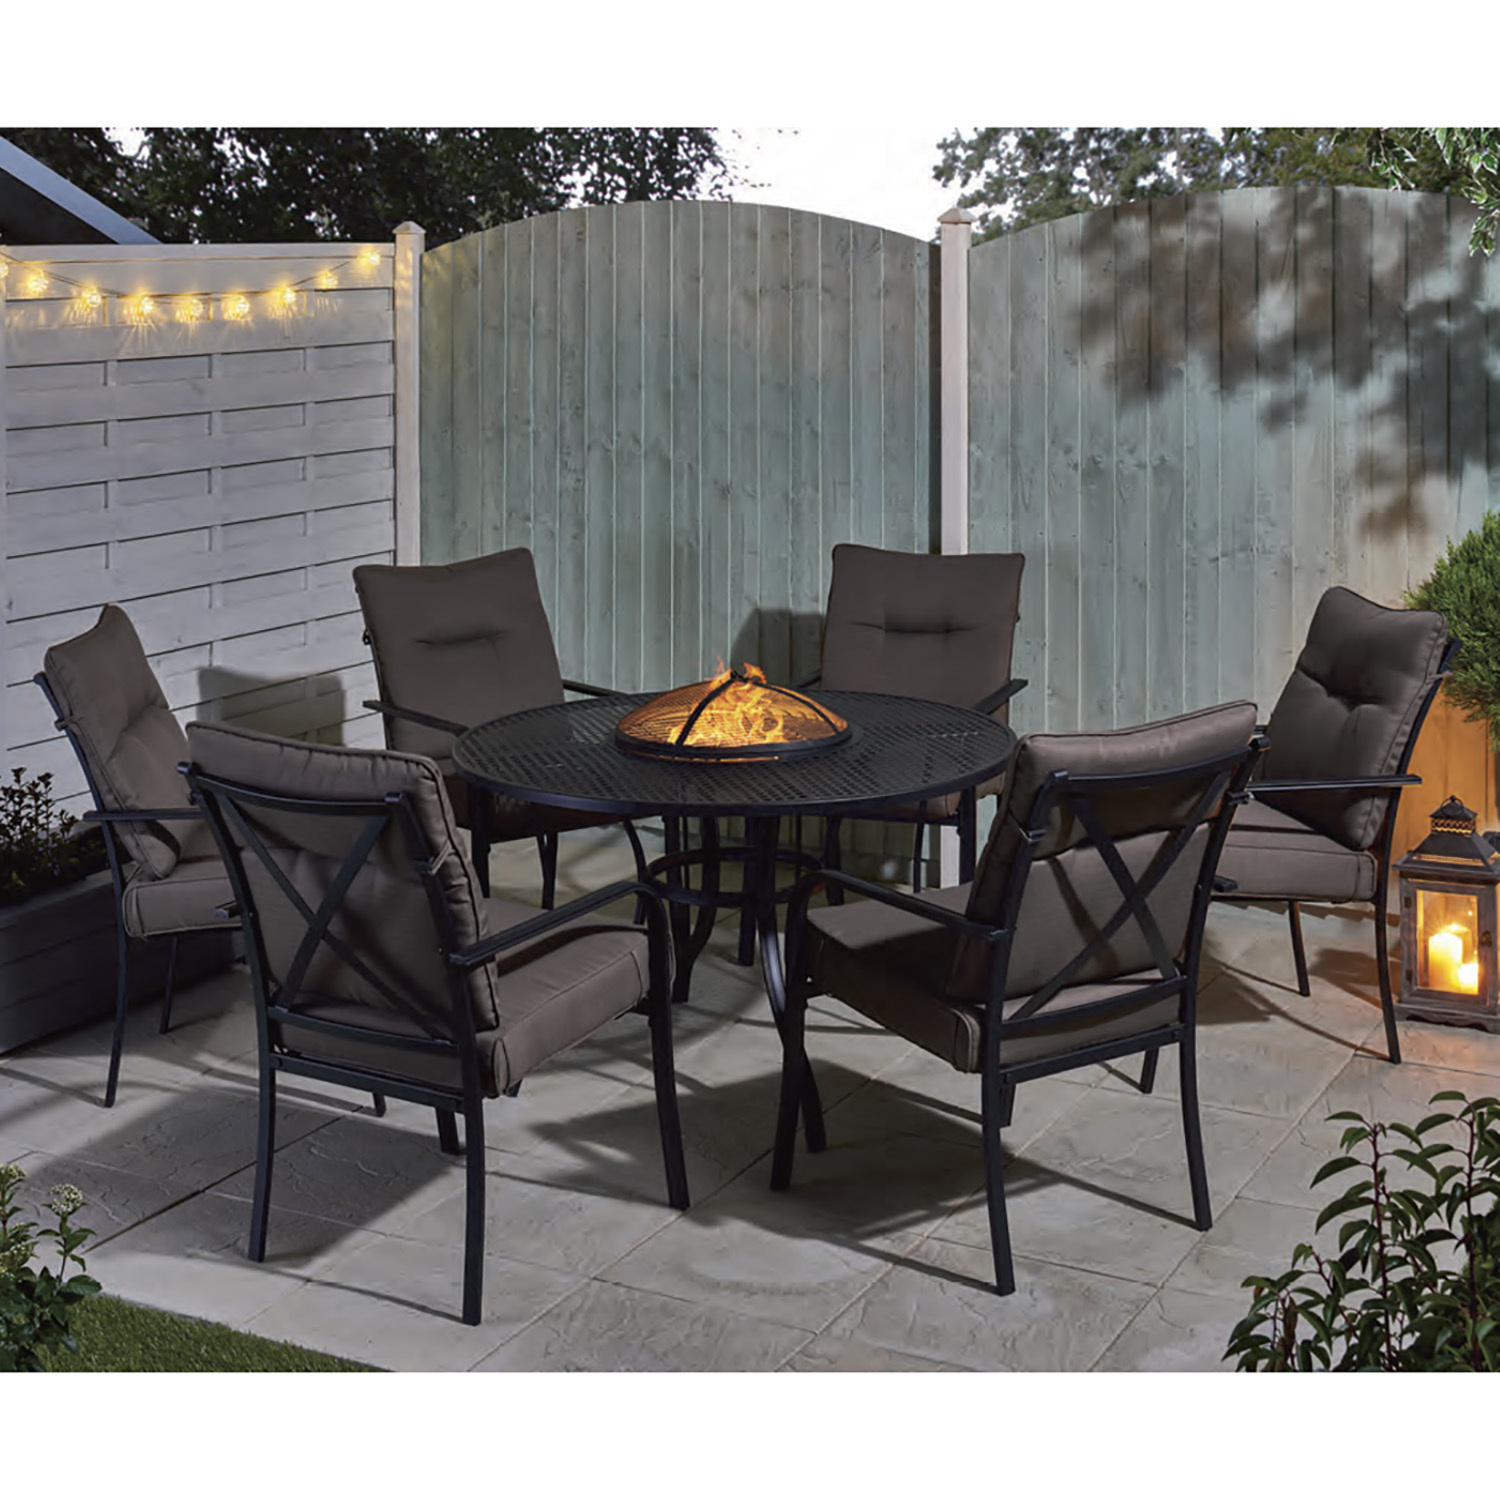 Catalonia Fire Pit And Ice Bucket Dining Set throughout measurements 1500 X 1500